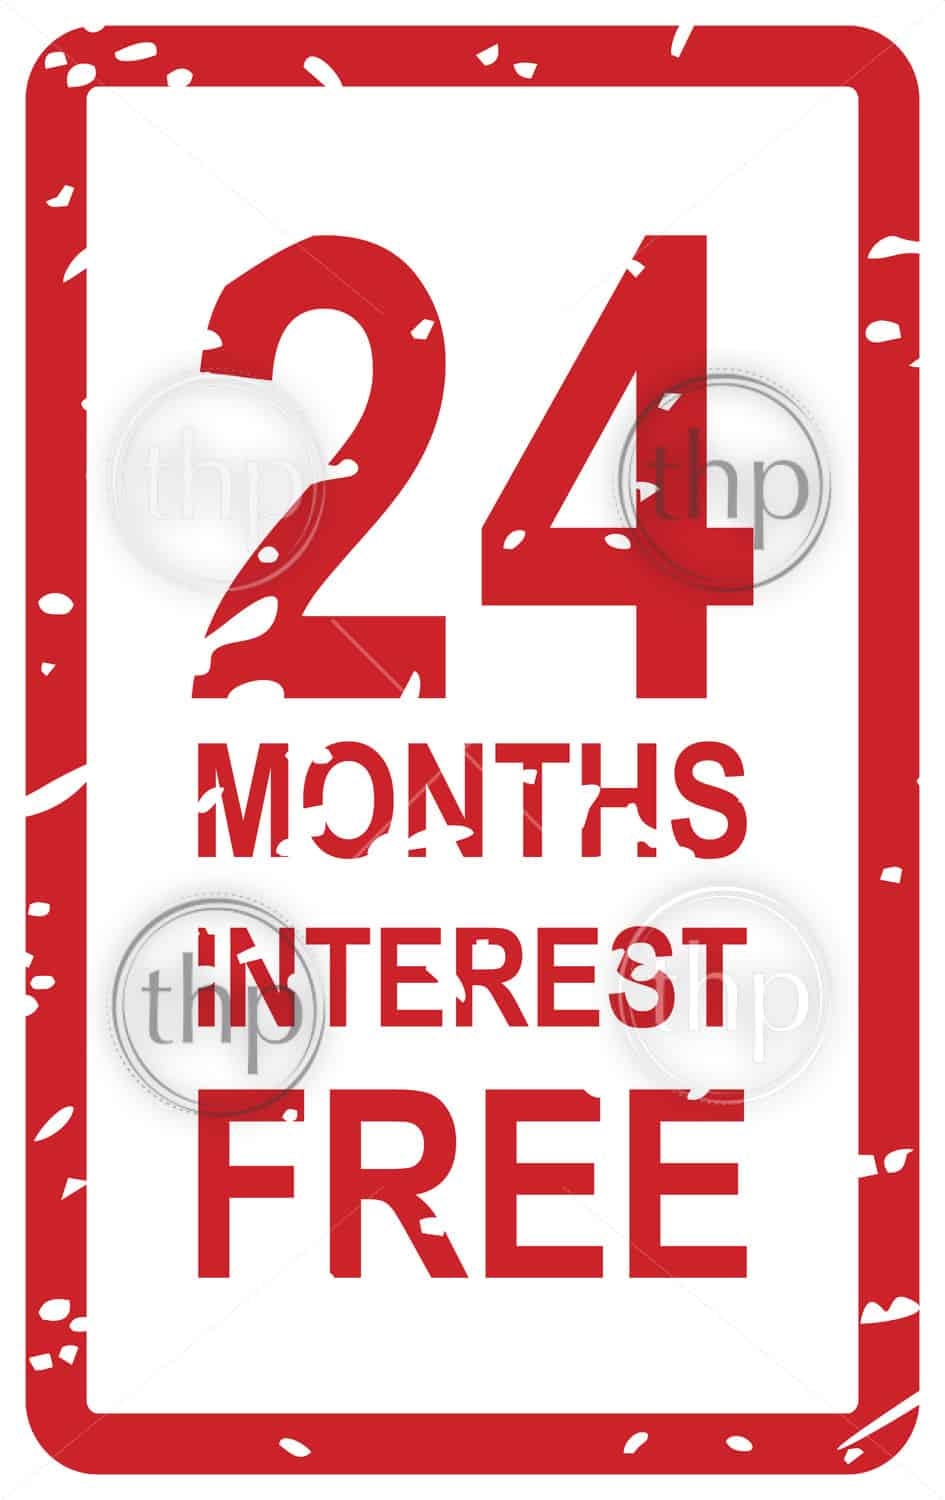 Red rubber stamp vector for 24 months interest free business concept